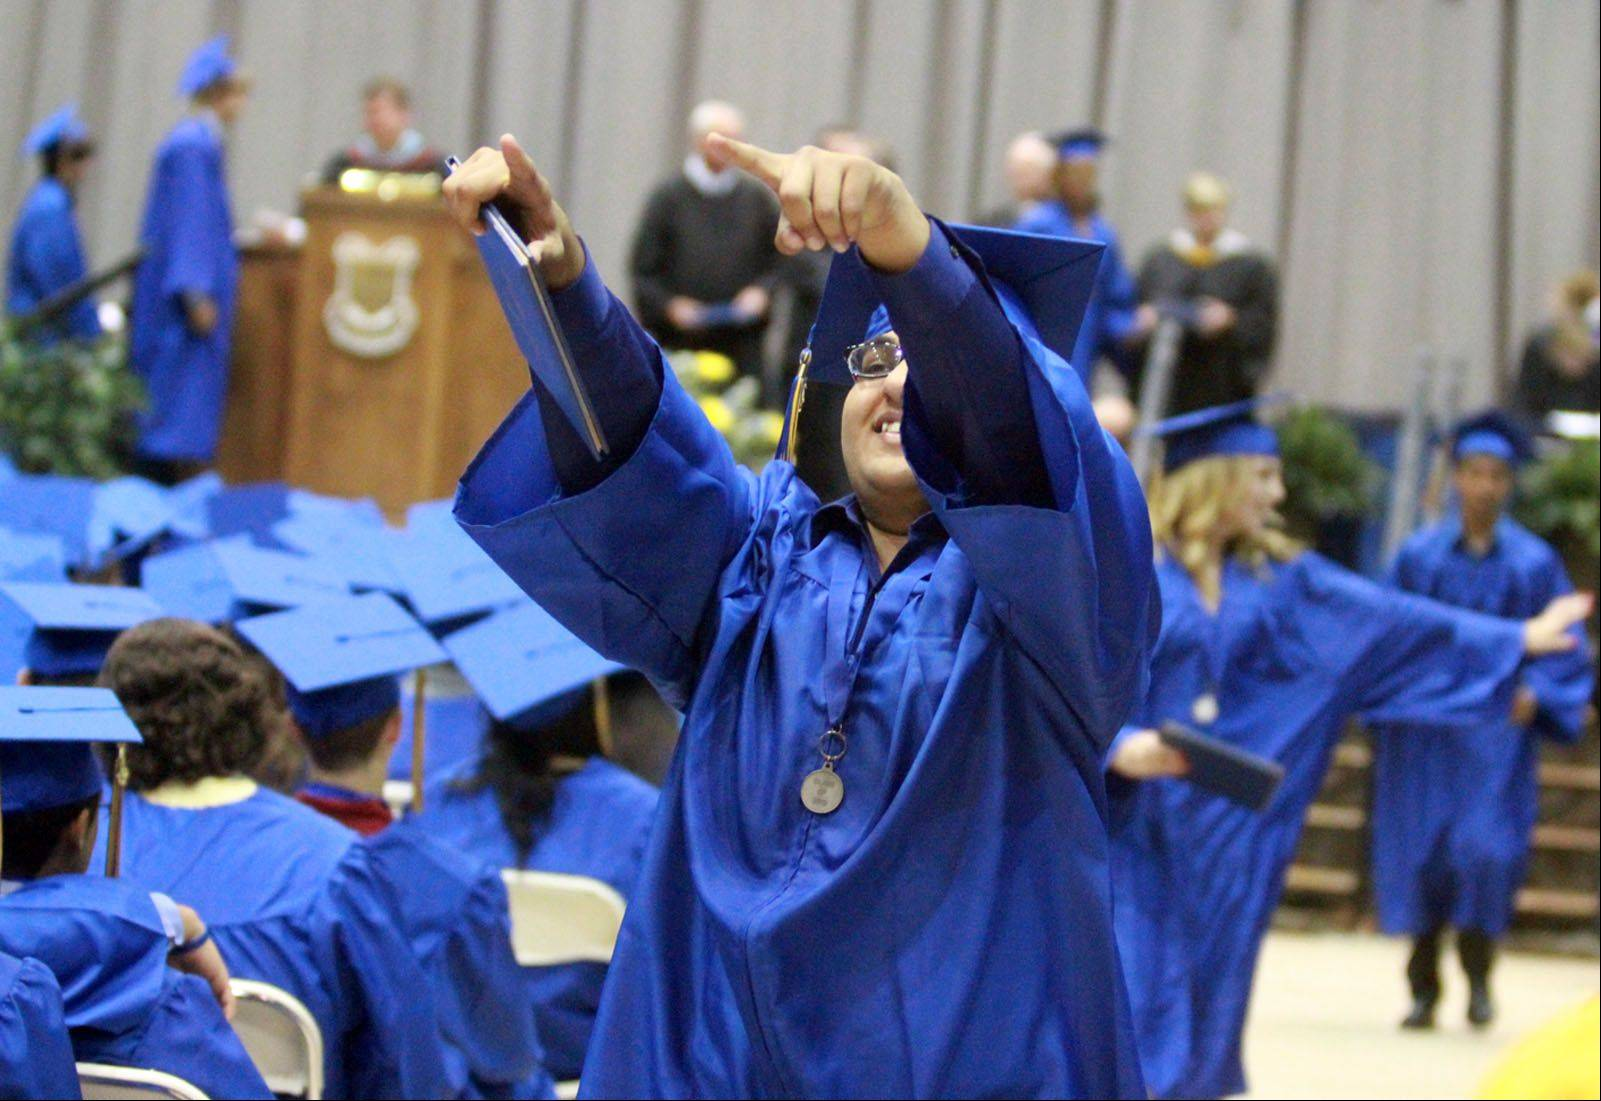 Images from the Warren Township High school graduation on Saturday, May 25 at the Welsh-Ryan Arena in Evanston.